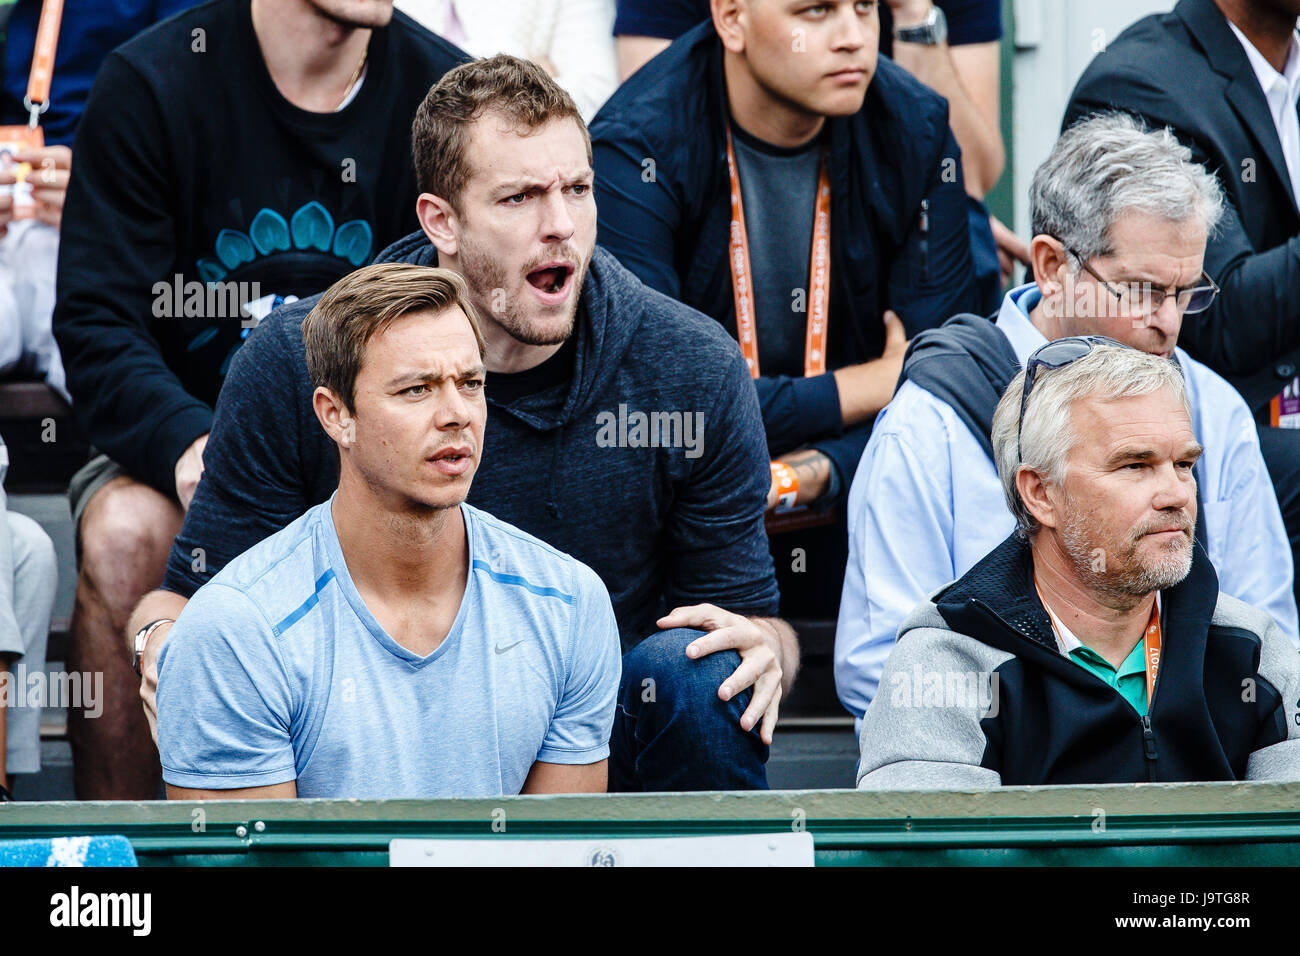 Paris, France, June 3rd 2017: US-Basketball-Pro David Lee during the 3rd round match of danish player Caroline Wozniacki Stock Photo